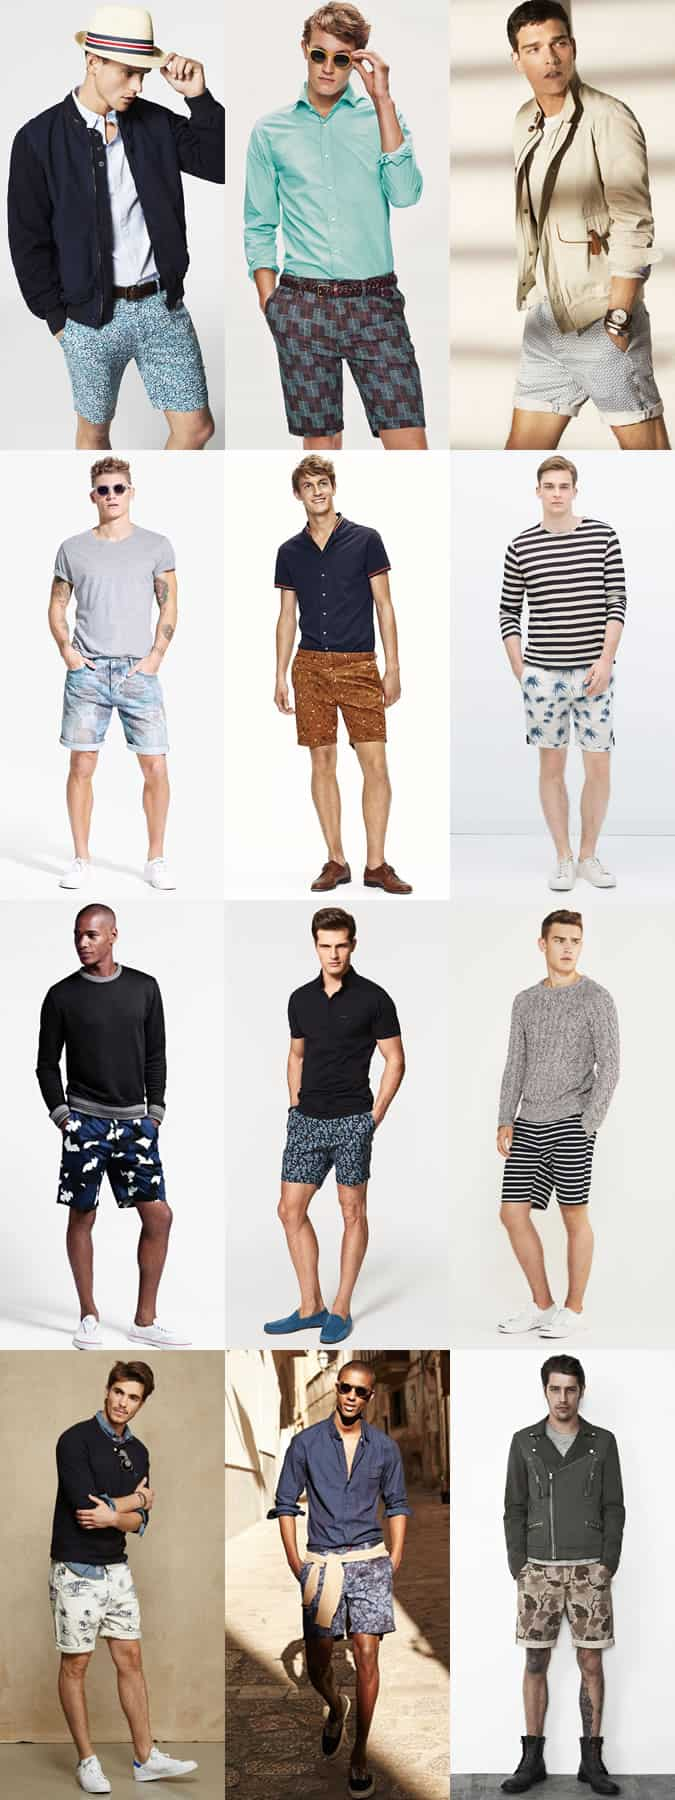 Men's Printed and Patterned Shorts Outfit Inspiration Lookbook